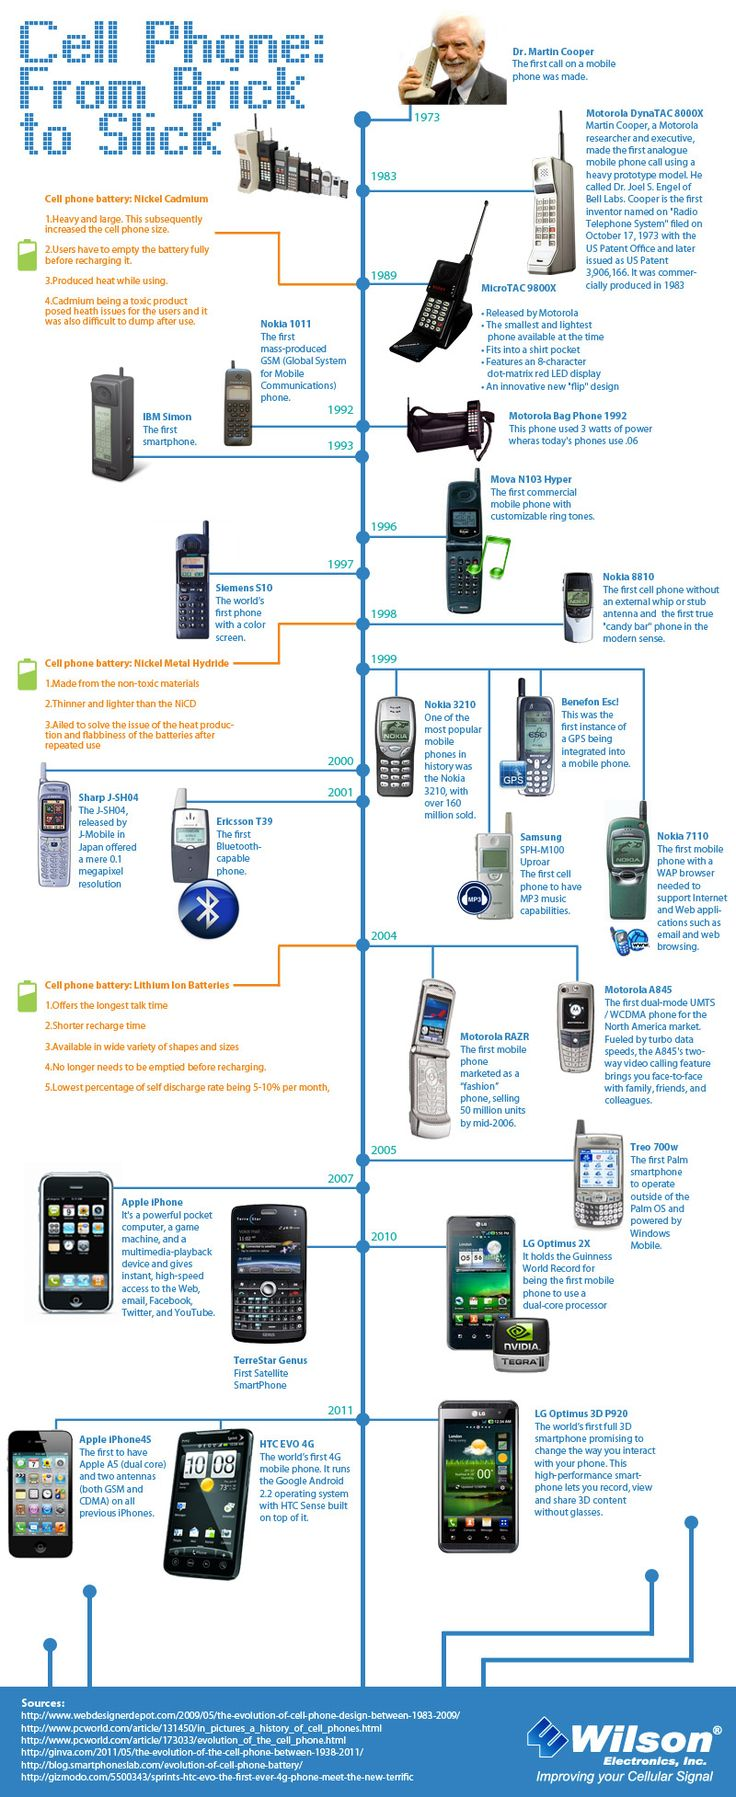 From Brick to Slick: 38 Years of Cellphone Evolution